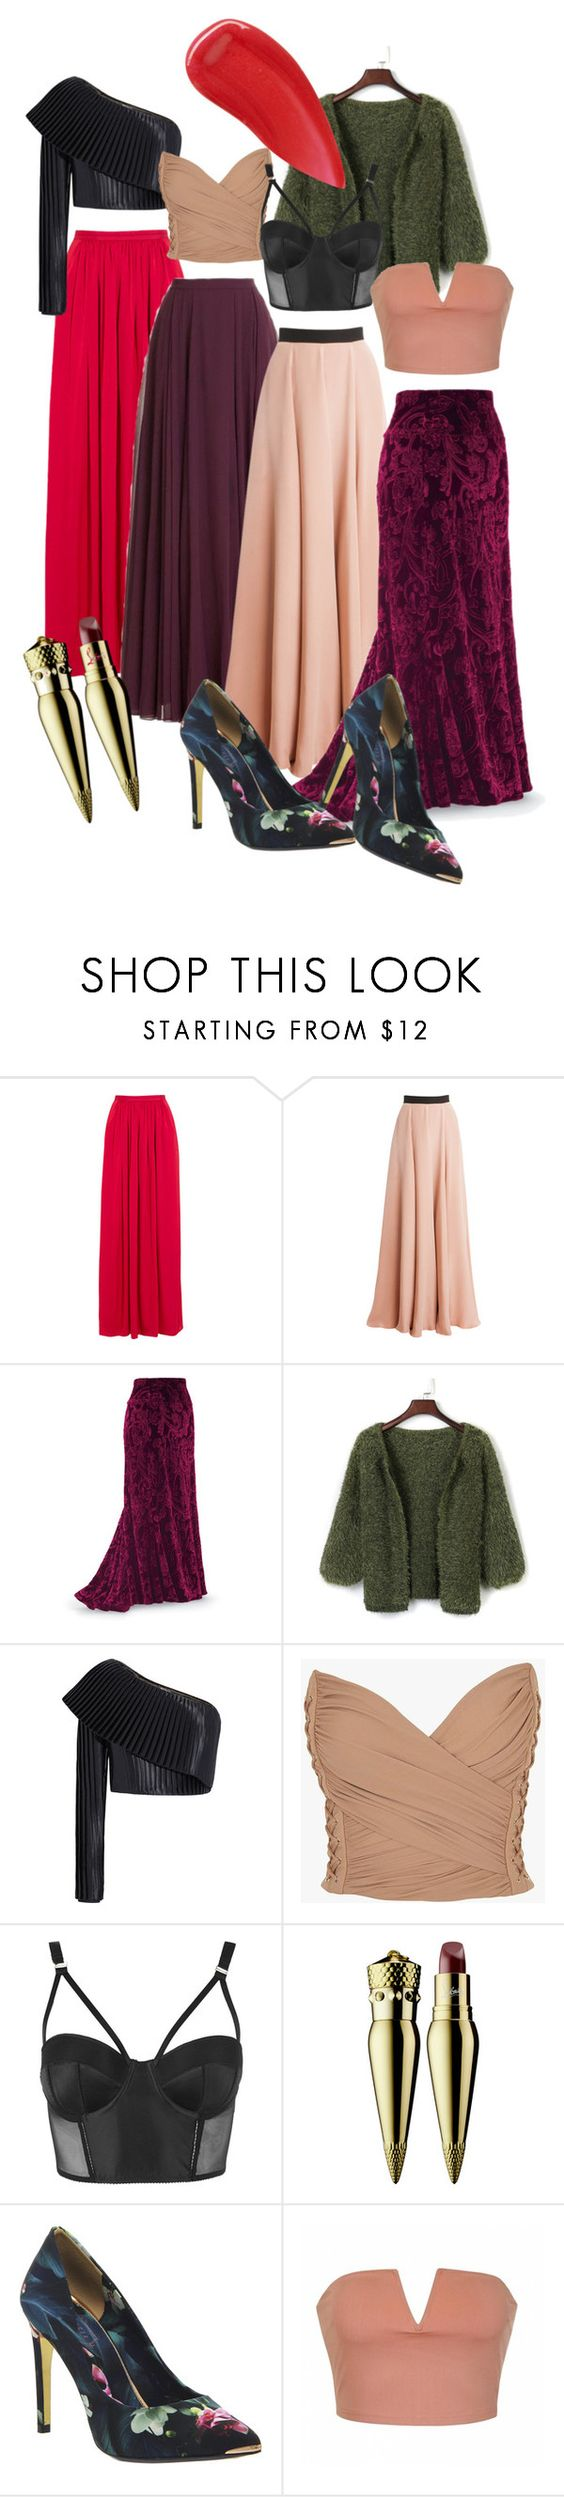 long skirts by dodo85 on Polyvore featuring Balmain, WithChic, Ally Fashion, Roksanda, Needle & Thread, Topshop, Ted Baker, Christian Louboutin, Burberry and Halston Heritage